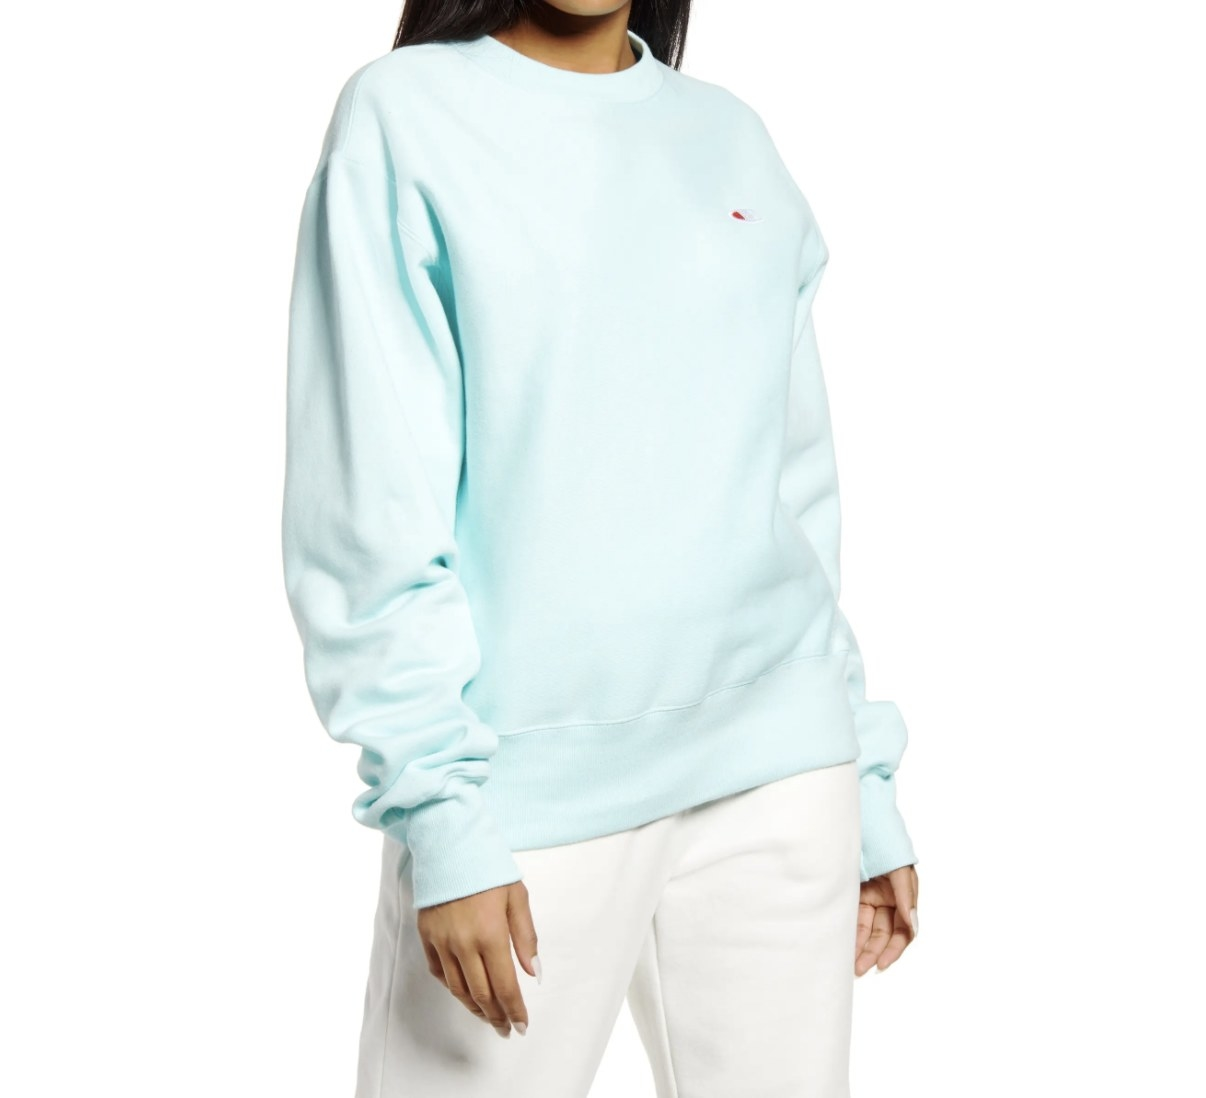 Model is wearing a light blue sweater and white pants